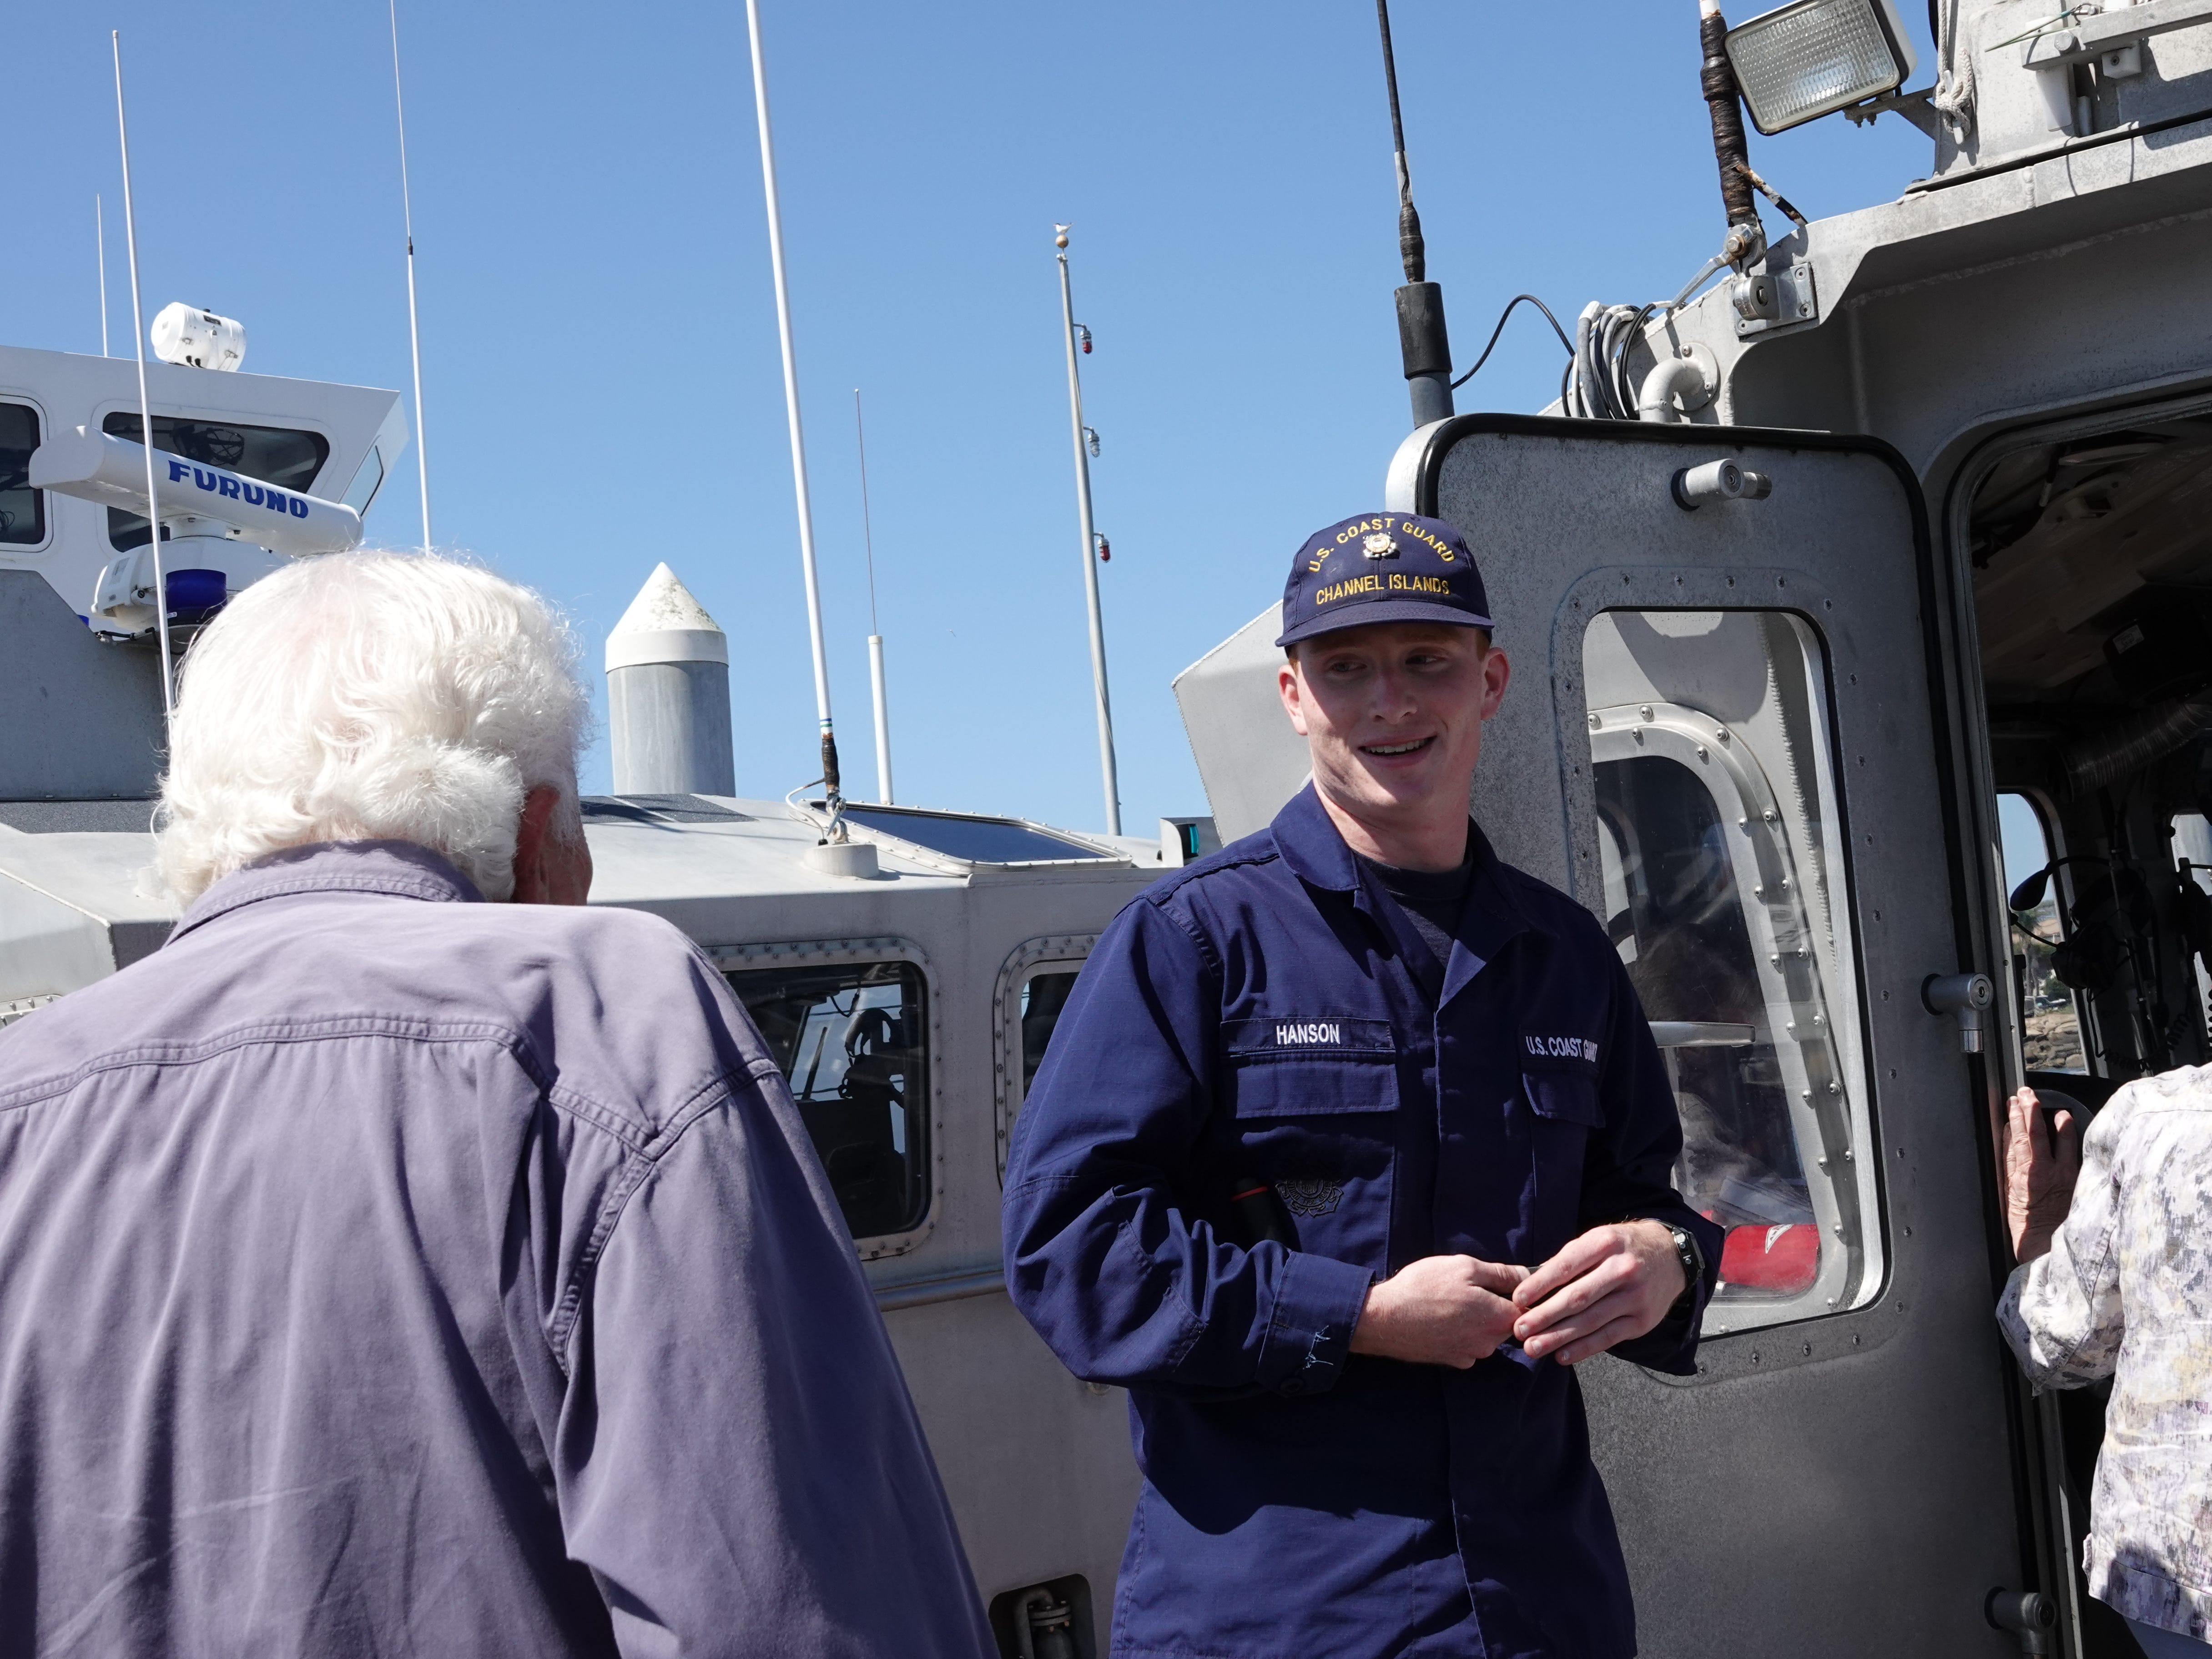 Coast Guard Seaman Ethan Hanson welcomes visitors aboard a 45-foot emergency response boat during Saturday's Safe Boating Expo at Channel Islands Harbor.